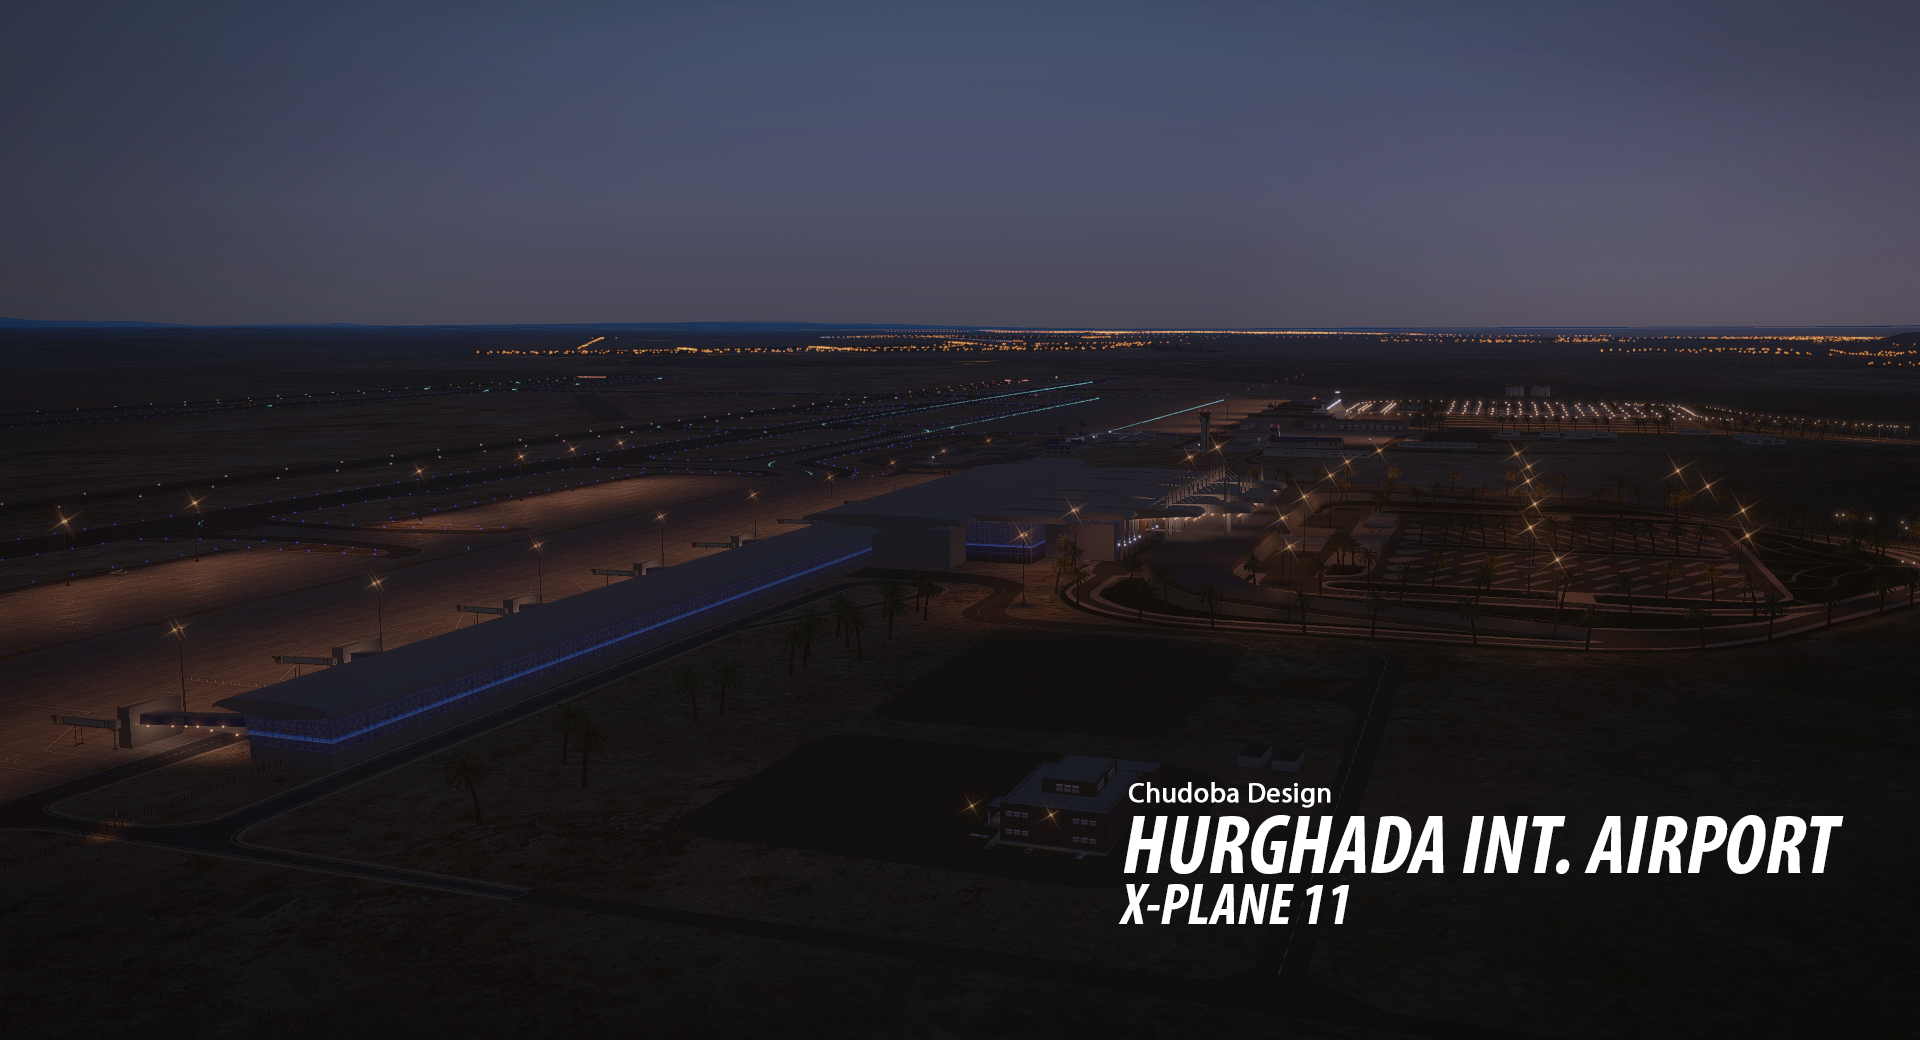 CHUDOBA DESIGN - HURGHADA INTERNATIONAL AIRPORT (HEGN) FOR X-PLANE 11